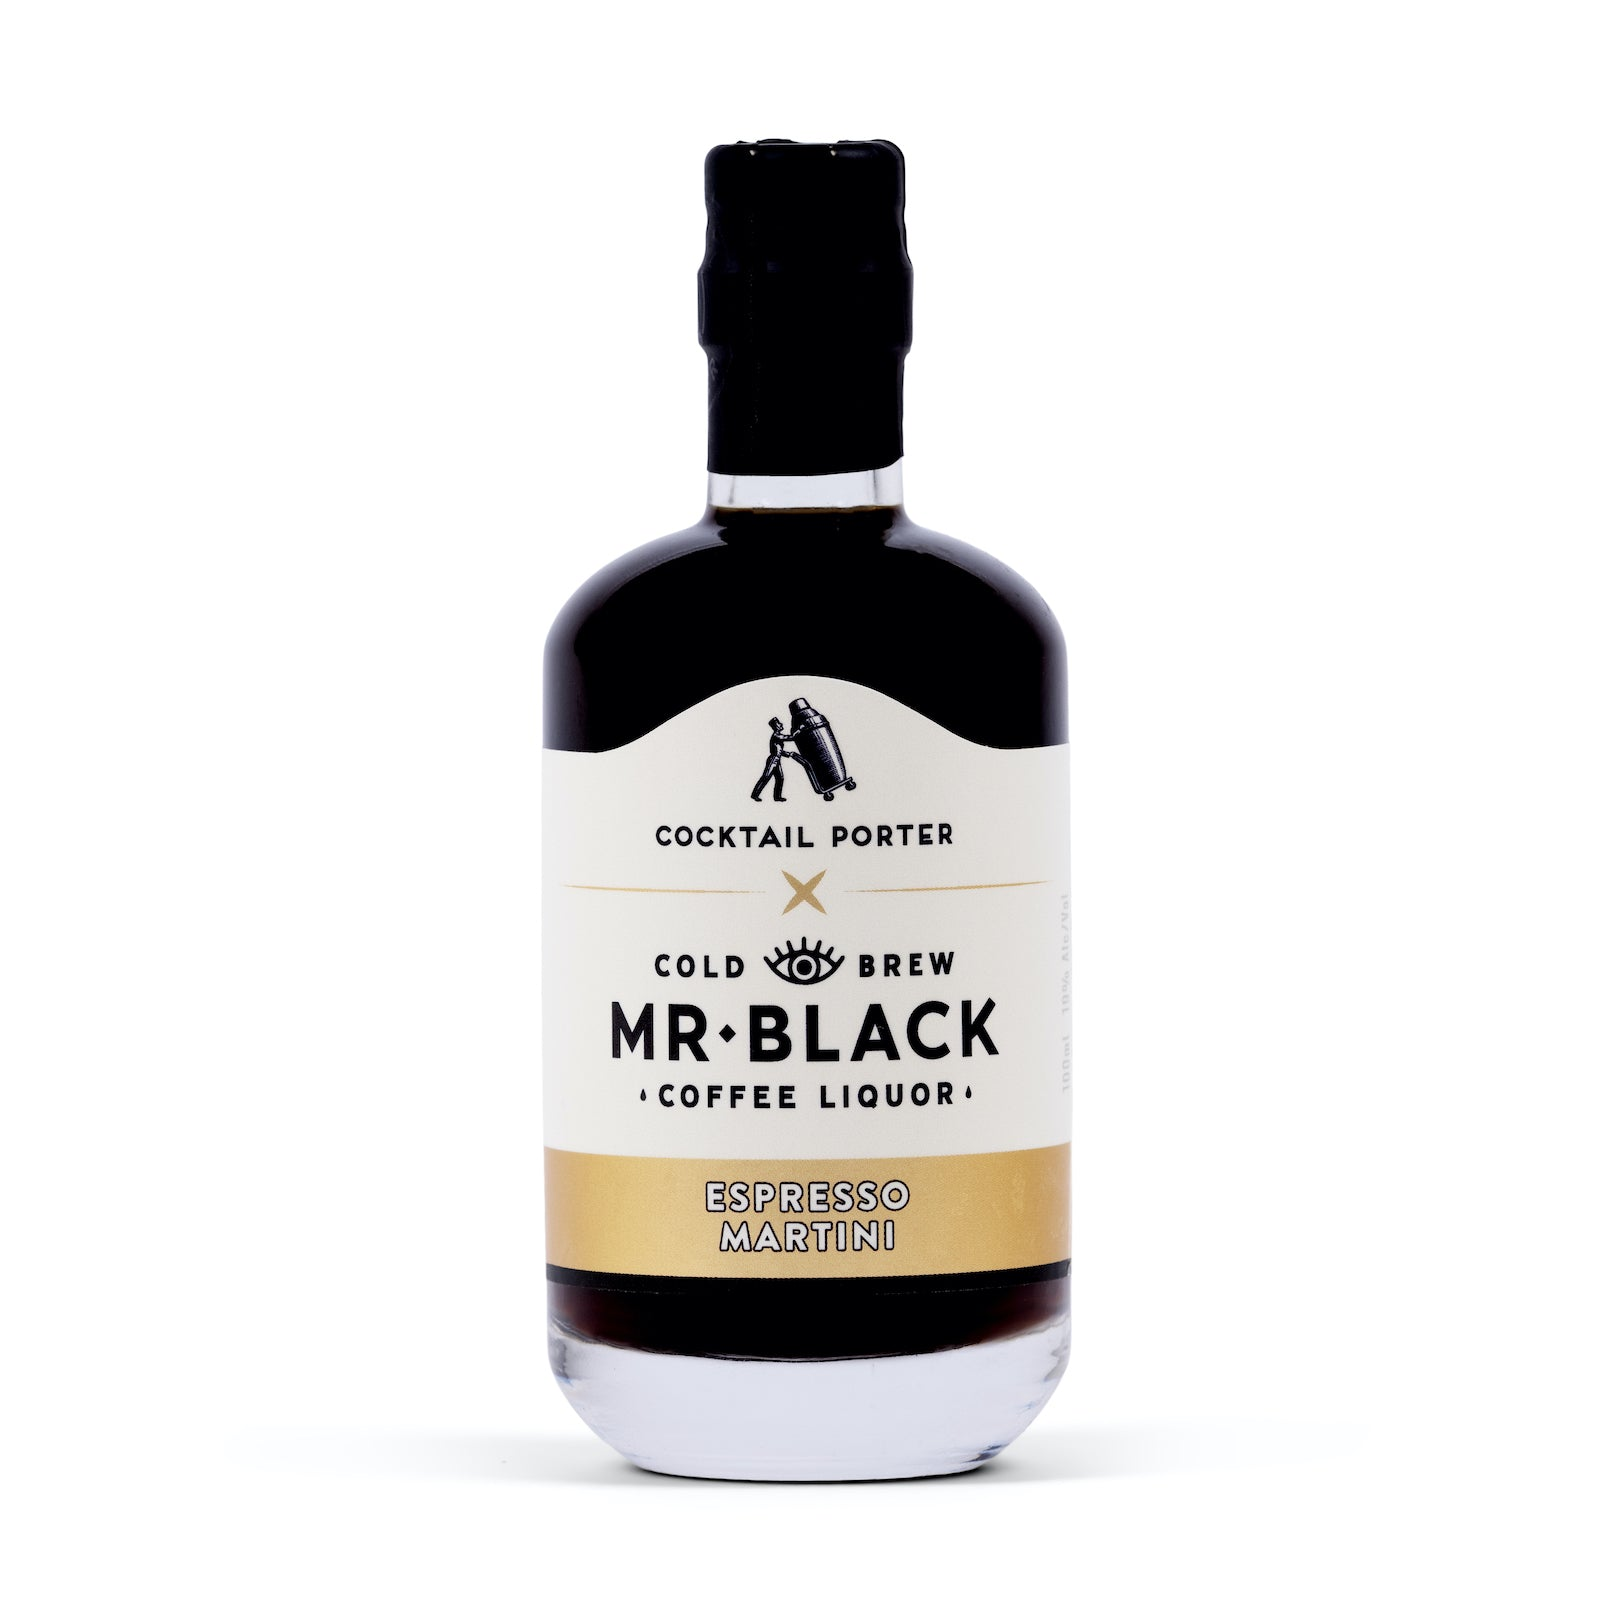 Mr Black Espresso Martini Bottled Cocktail